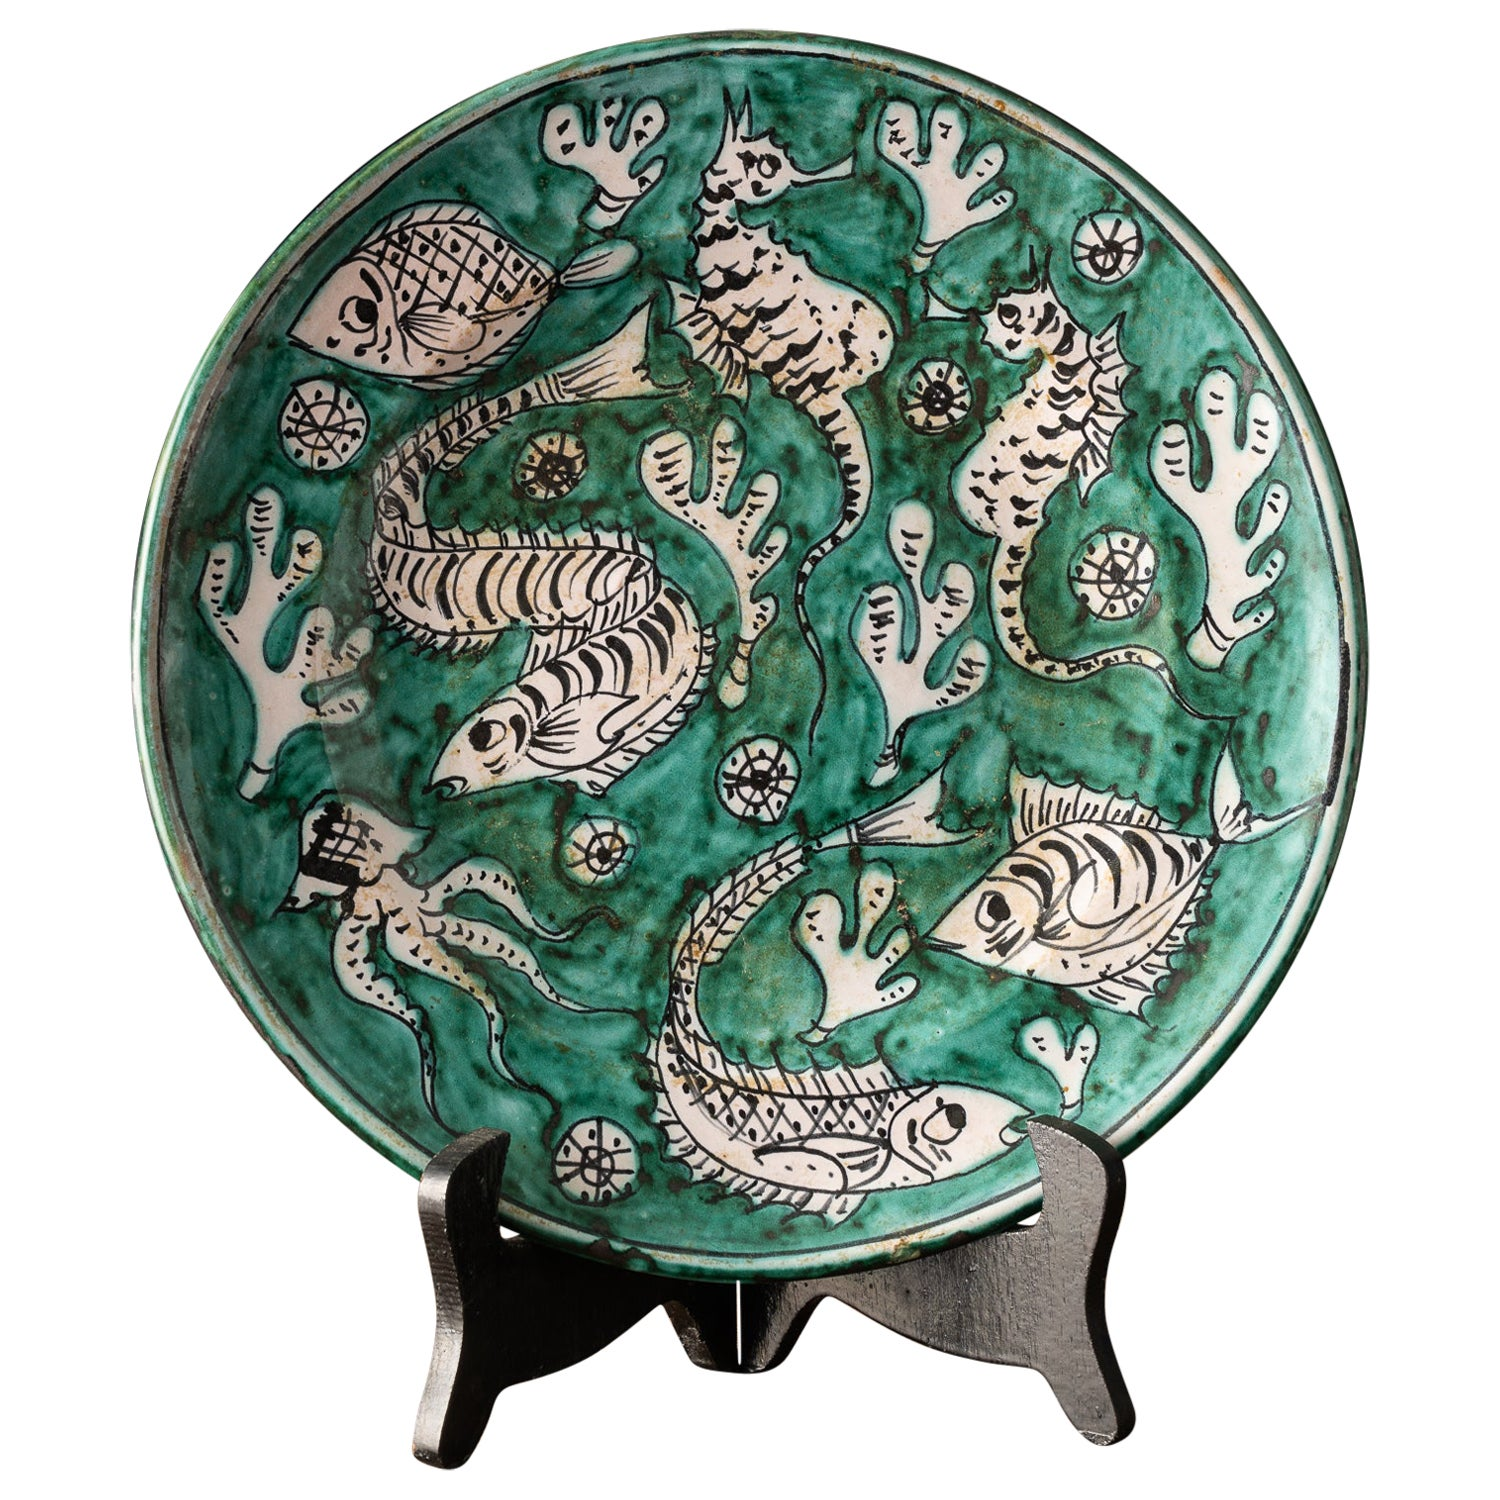 Beautiful Hand Painted Pottery Display Plate from Amalfi, Italy